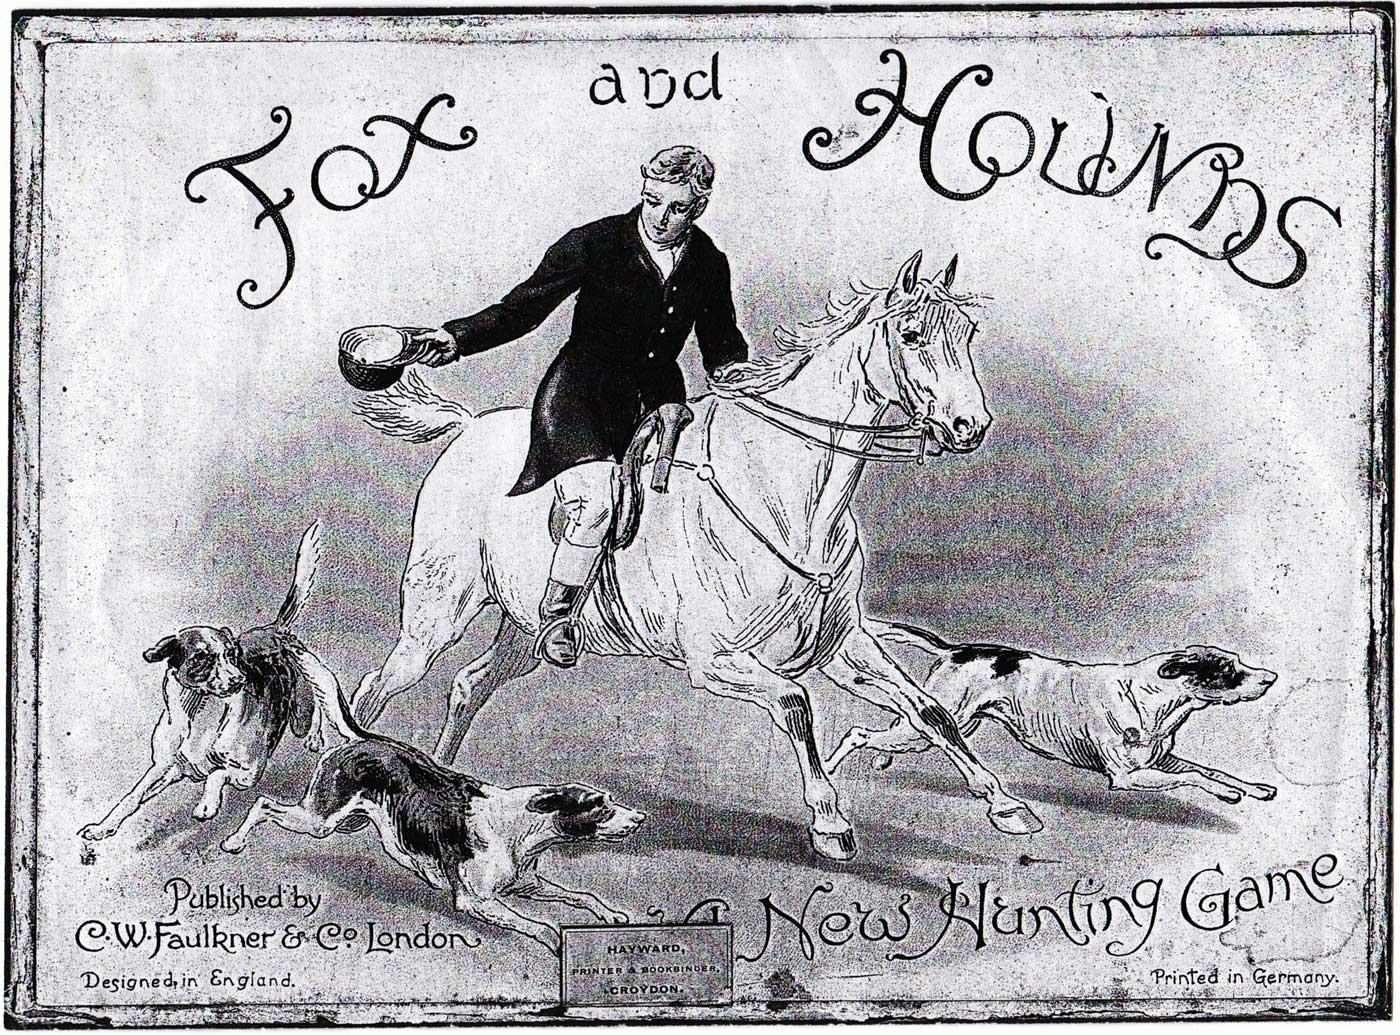 Fox & Hounds card game published by C.W. Faulkner & Co., c.1899